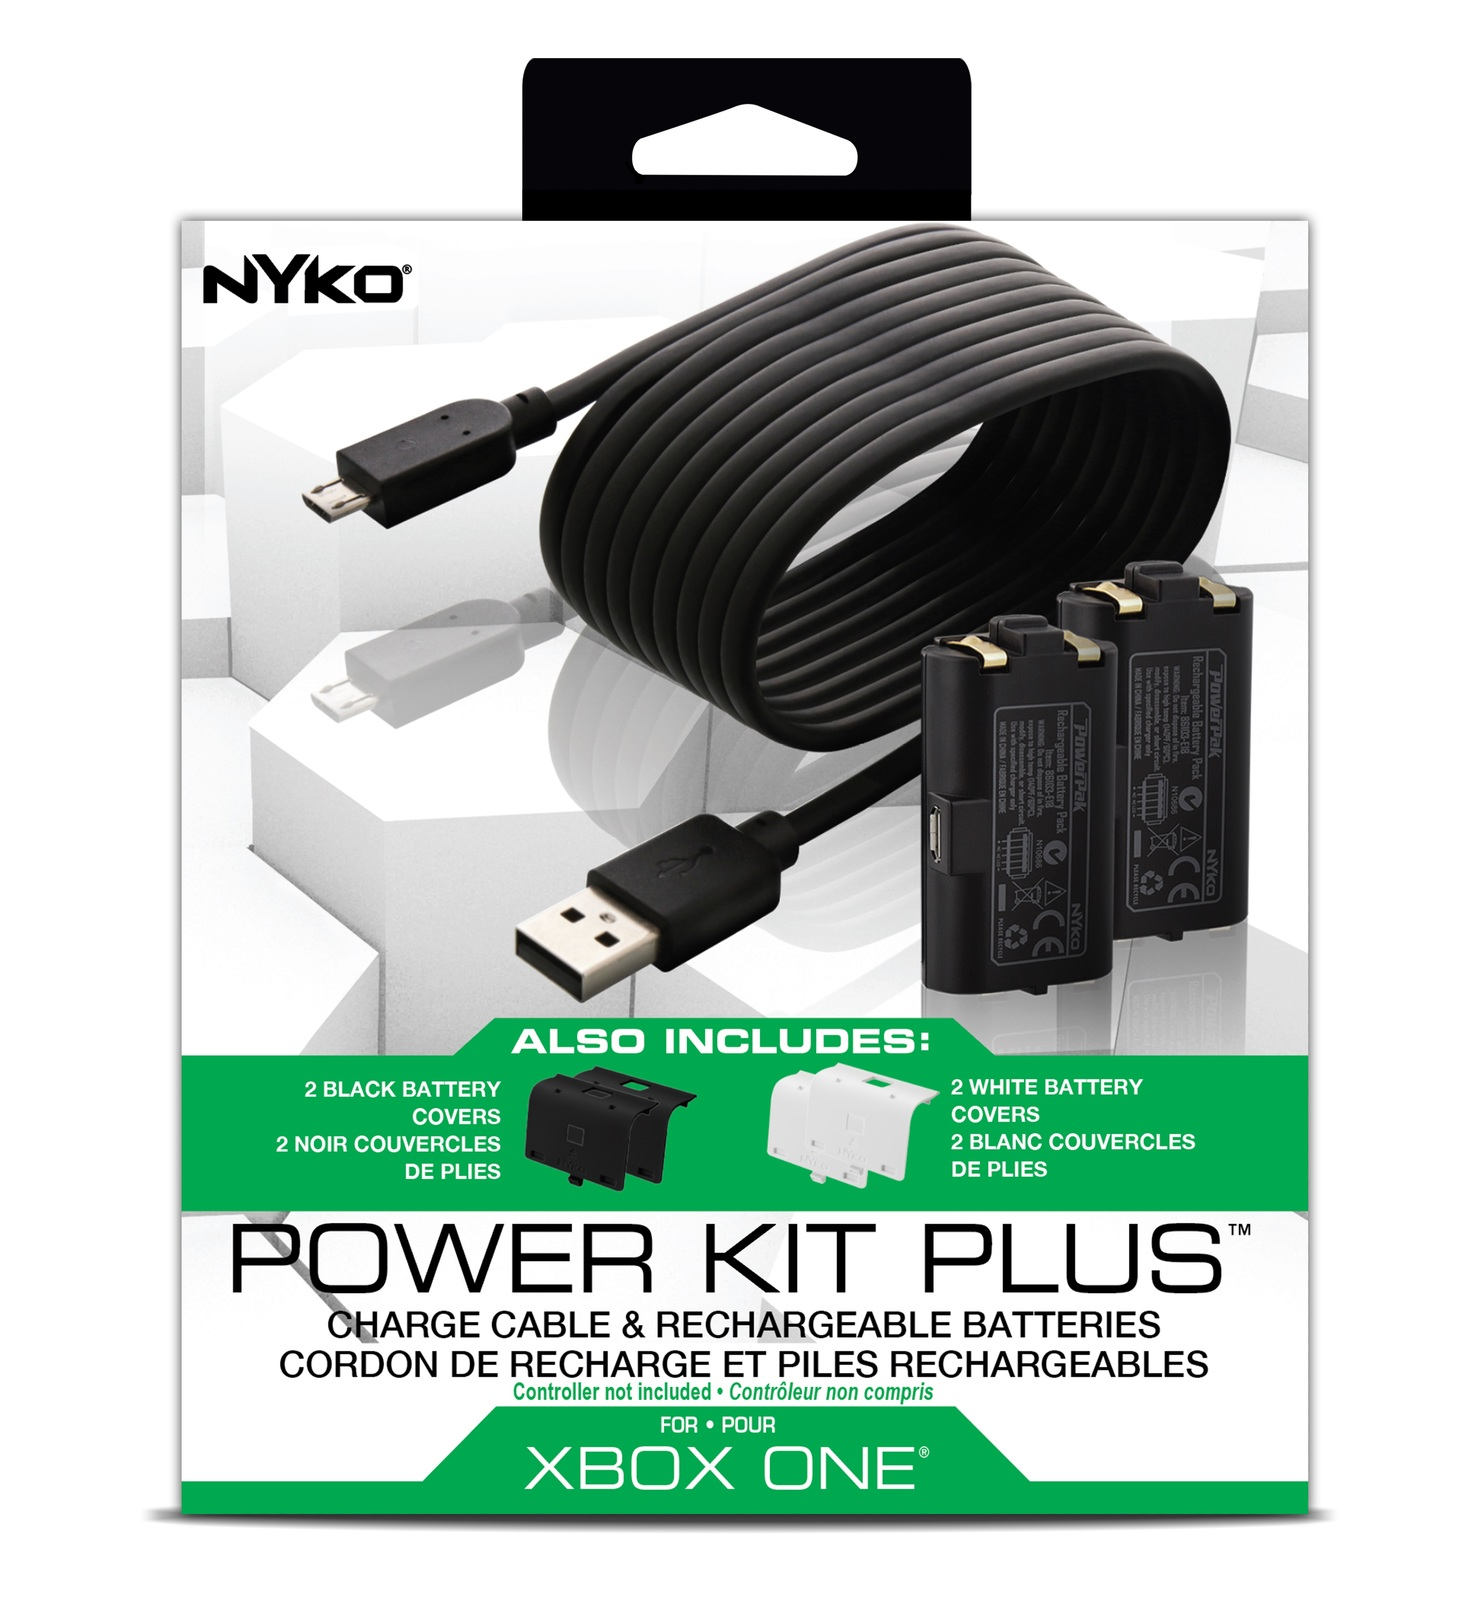 Nyko Xbox One Power Kit Plus screenshot